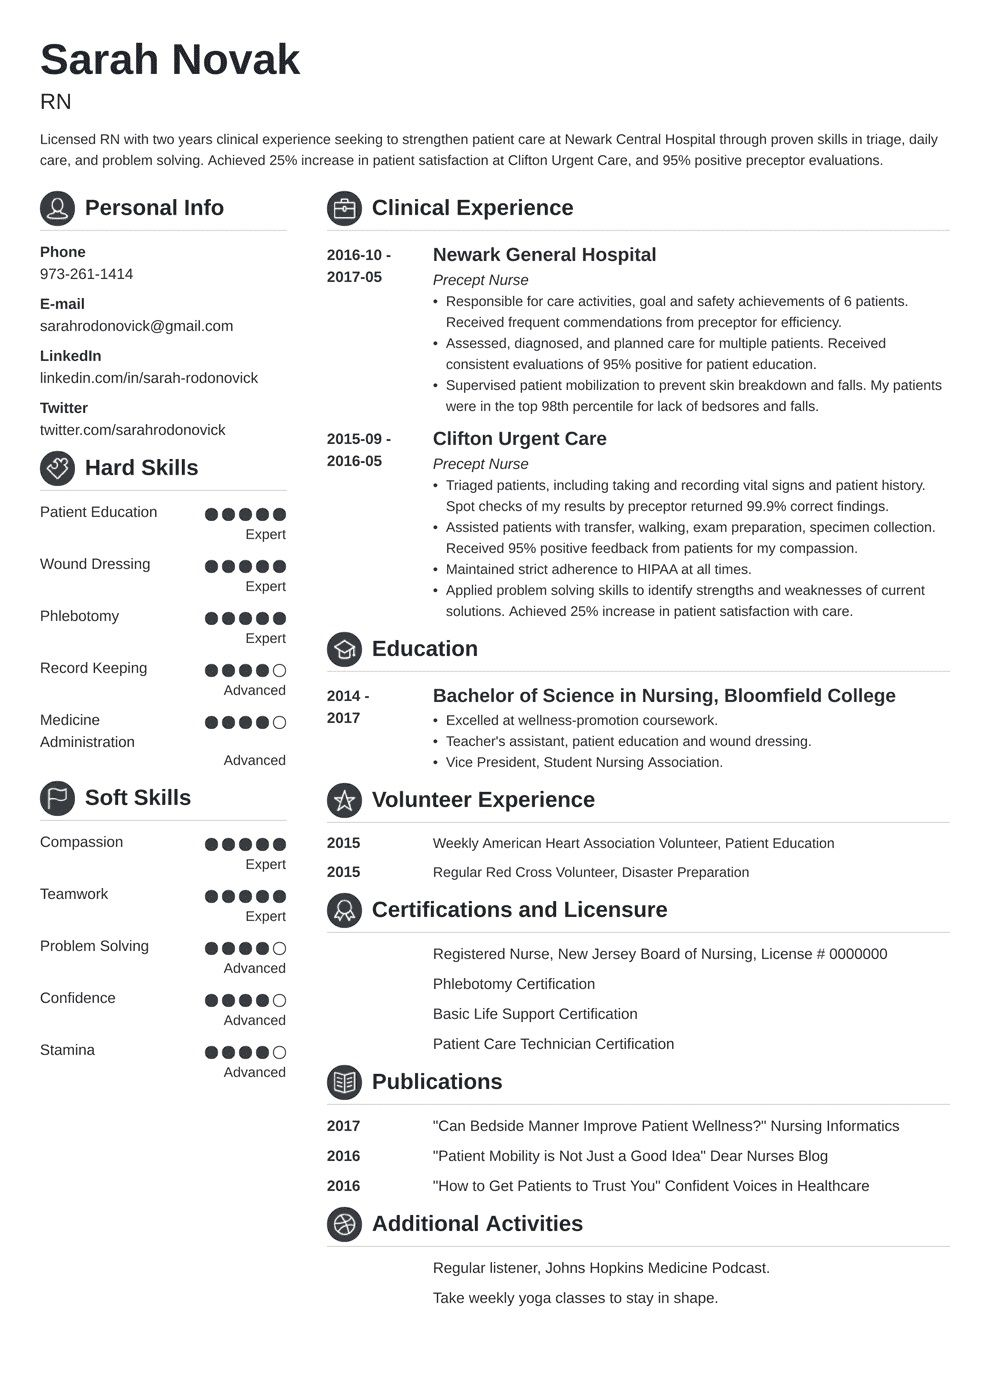 007 Marvelou New Grad Nursing Resume Template Photo  Graduate Nurse PractitionerFull